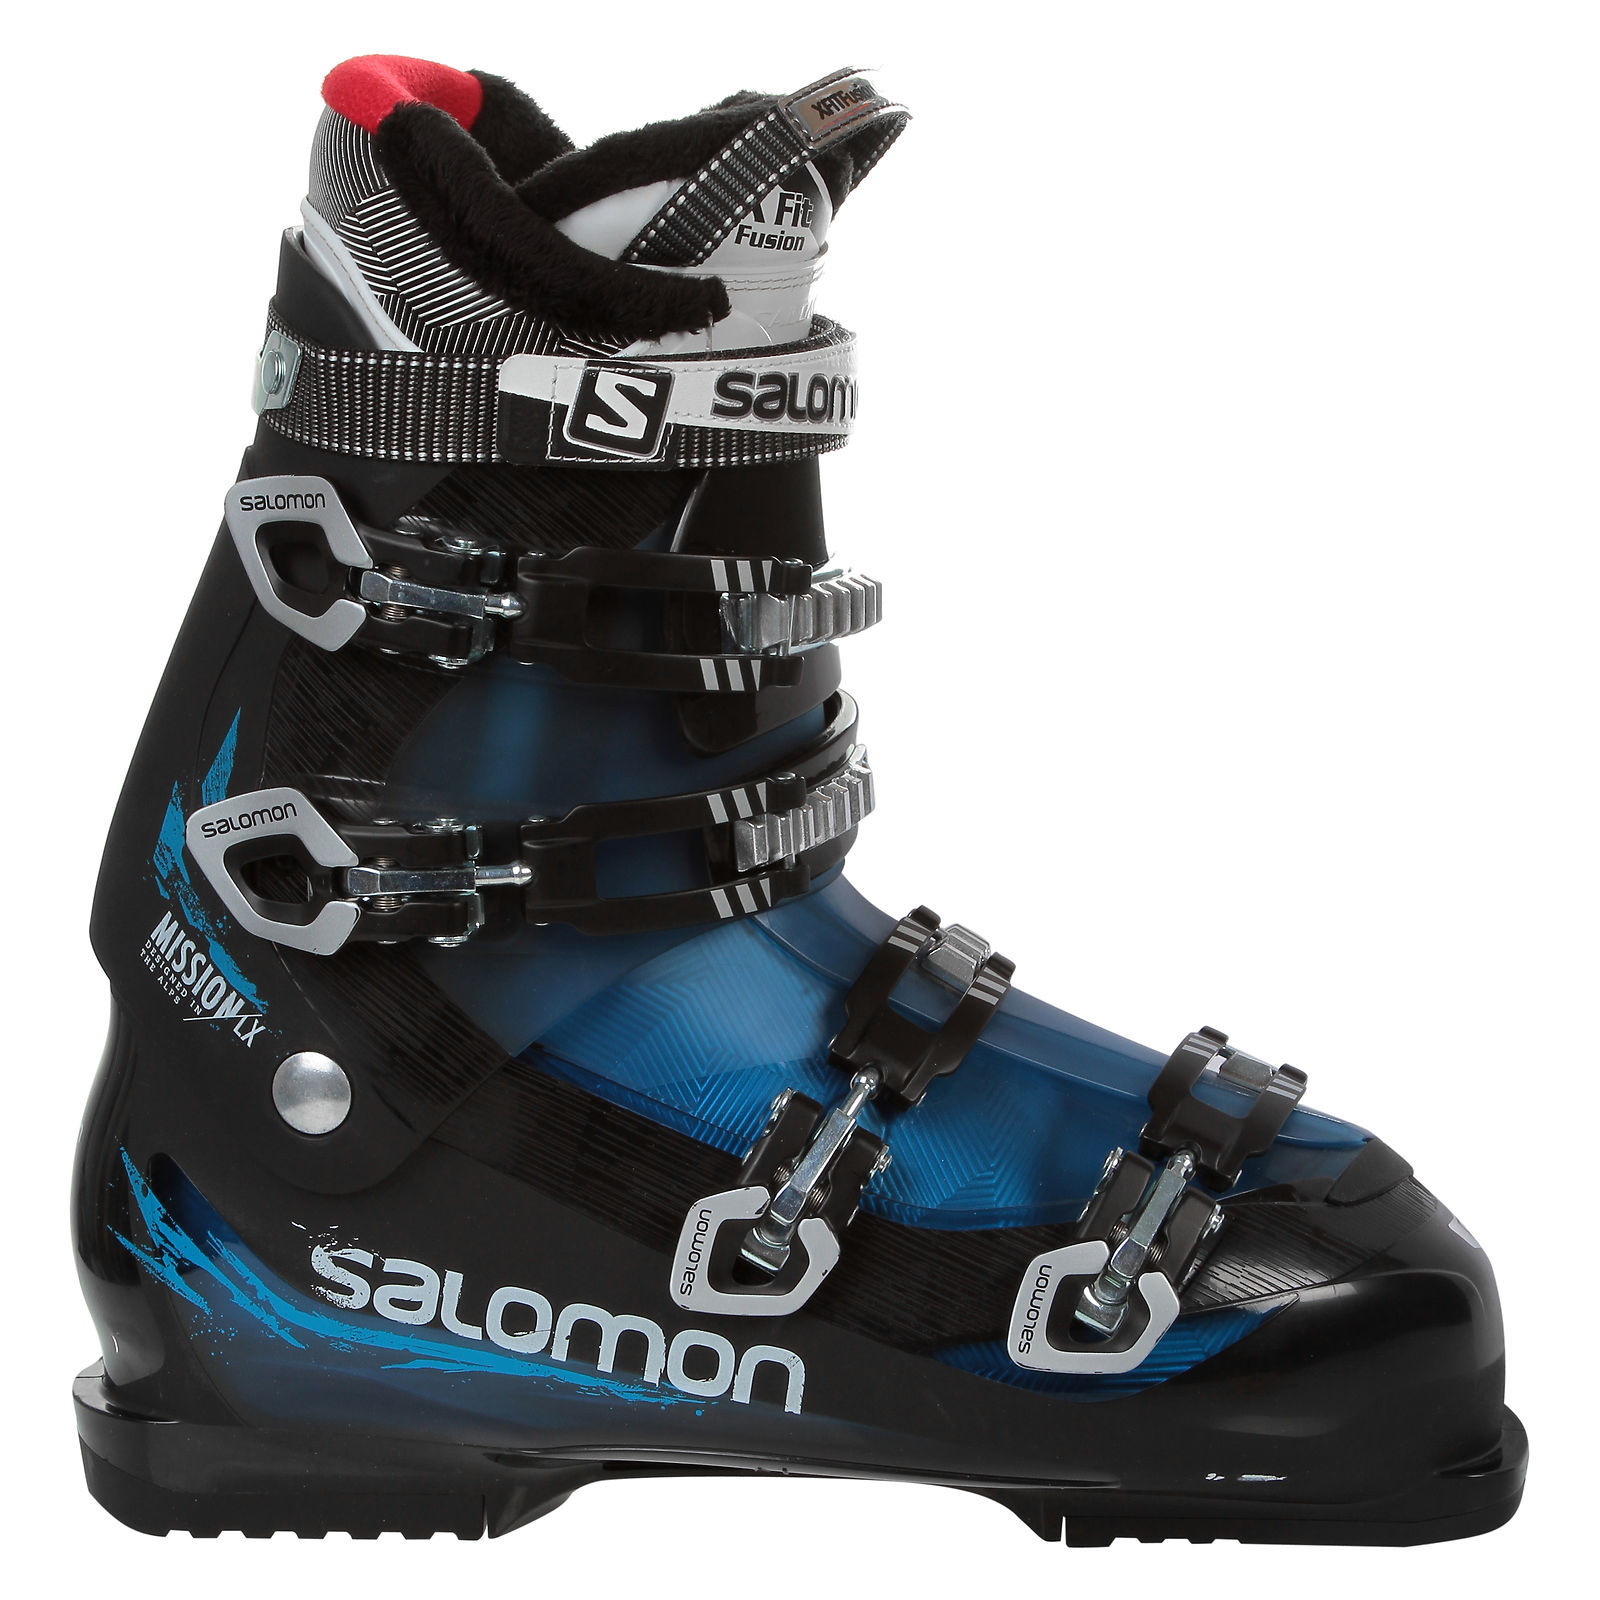 Buty Salomon Mission LX 380526 - outlet:31.5